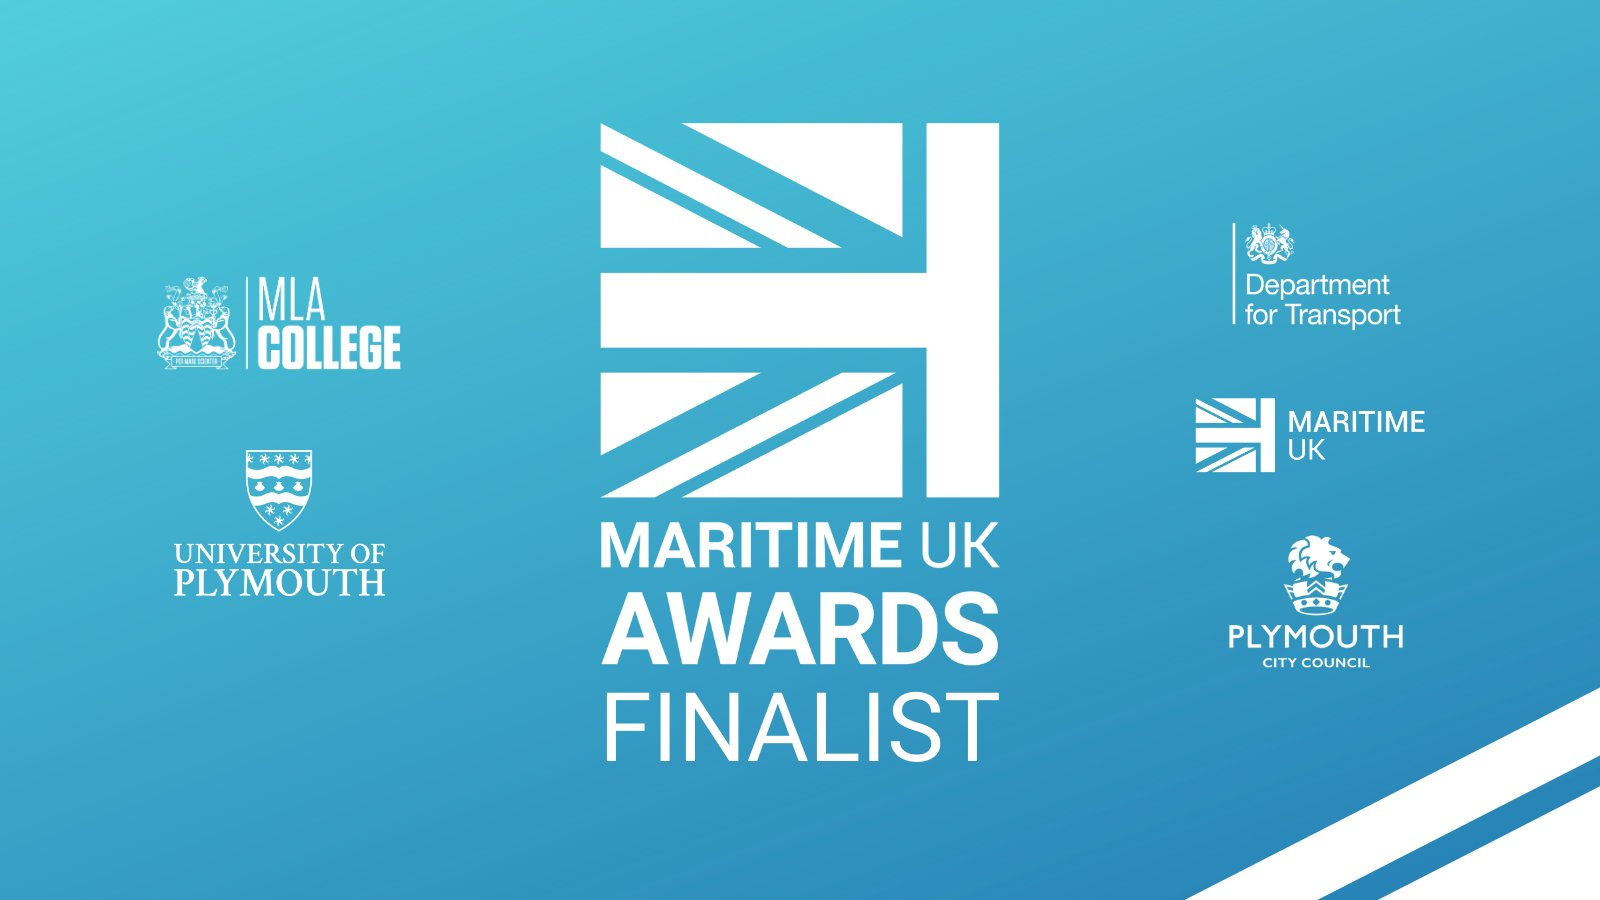 maritime uk awards 2020